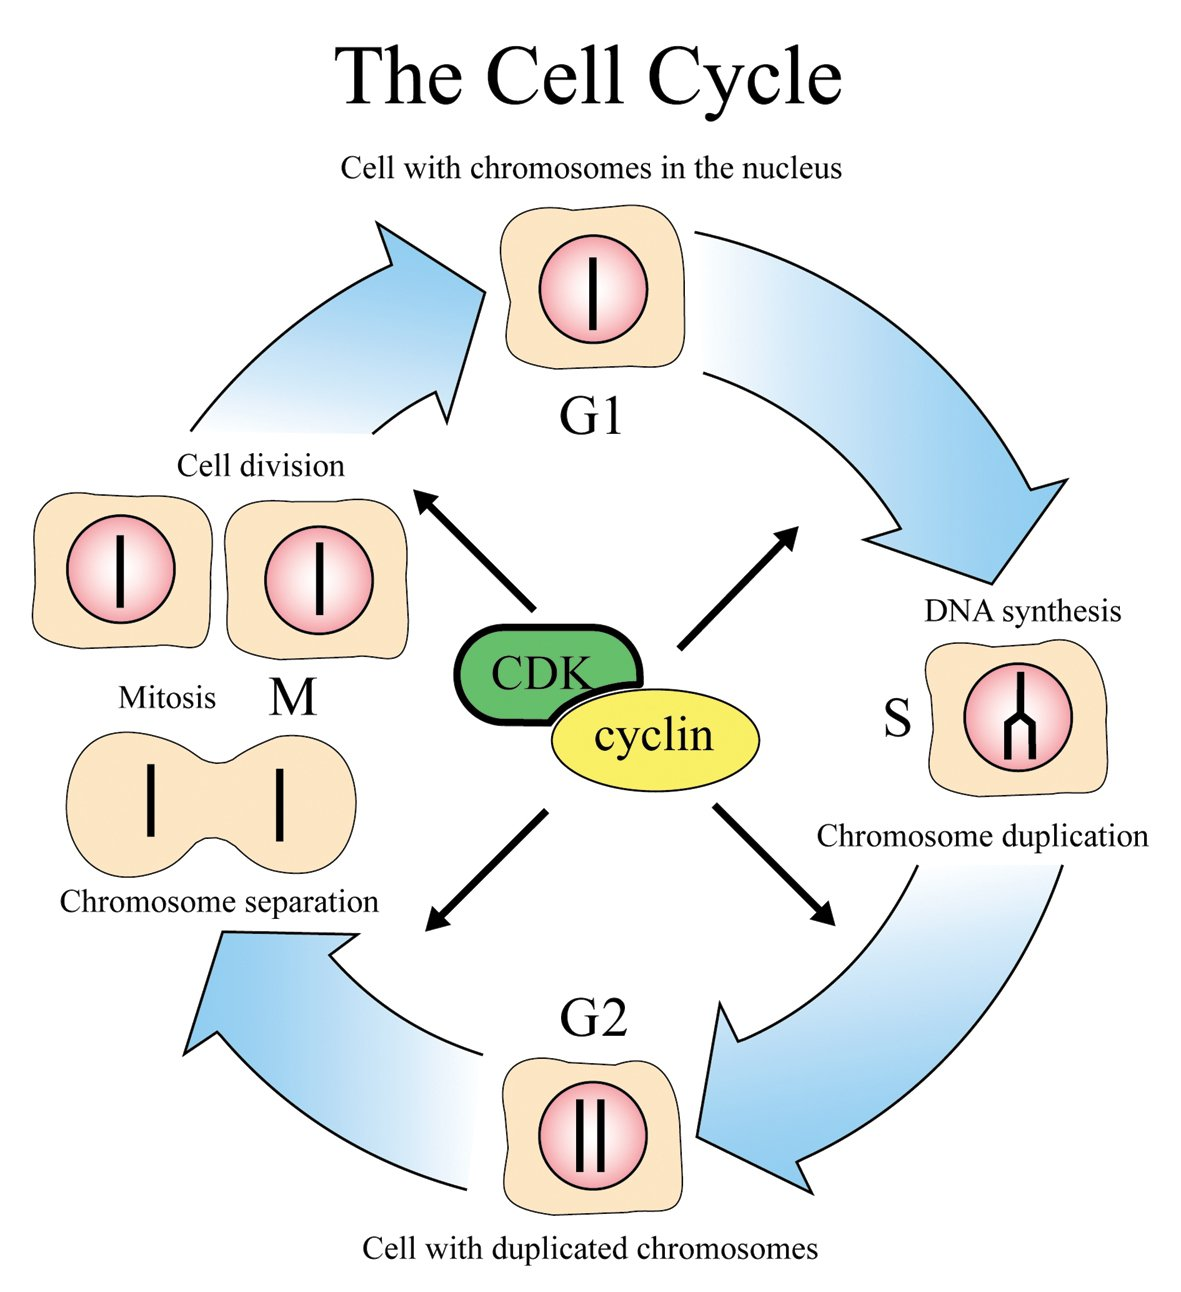 the nobel prize in physiology or medicine for 2001 press release G1 Phase 30 cell cycle english version